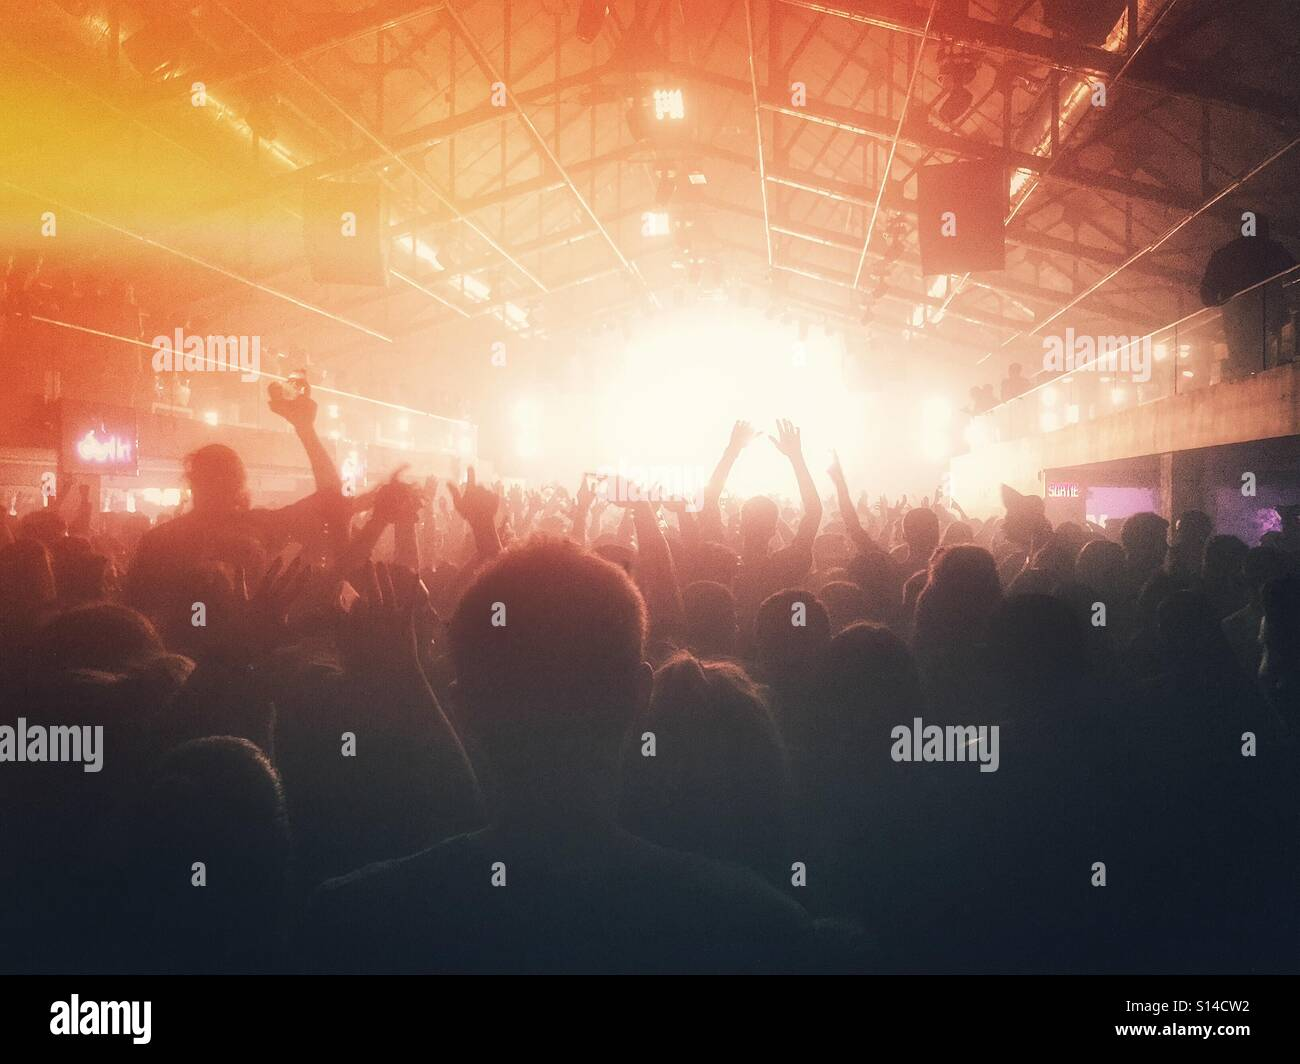 Electronic music crowd - Stock Image